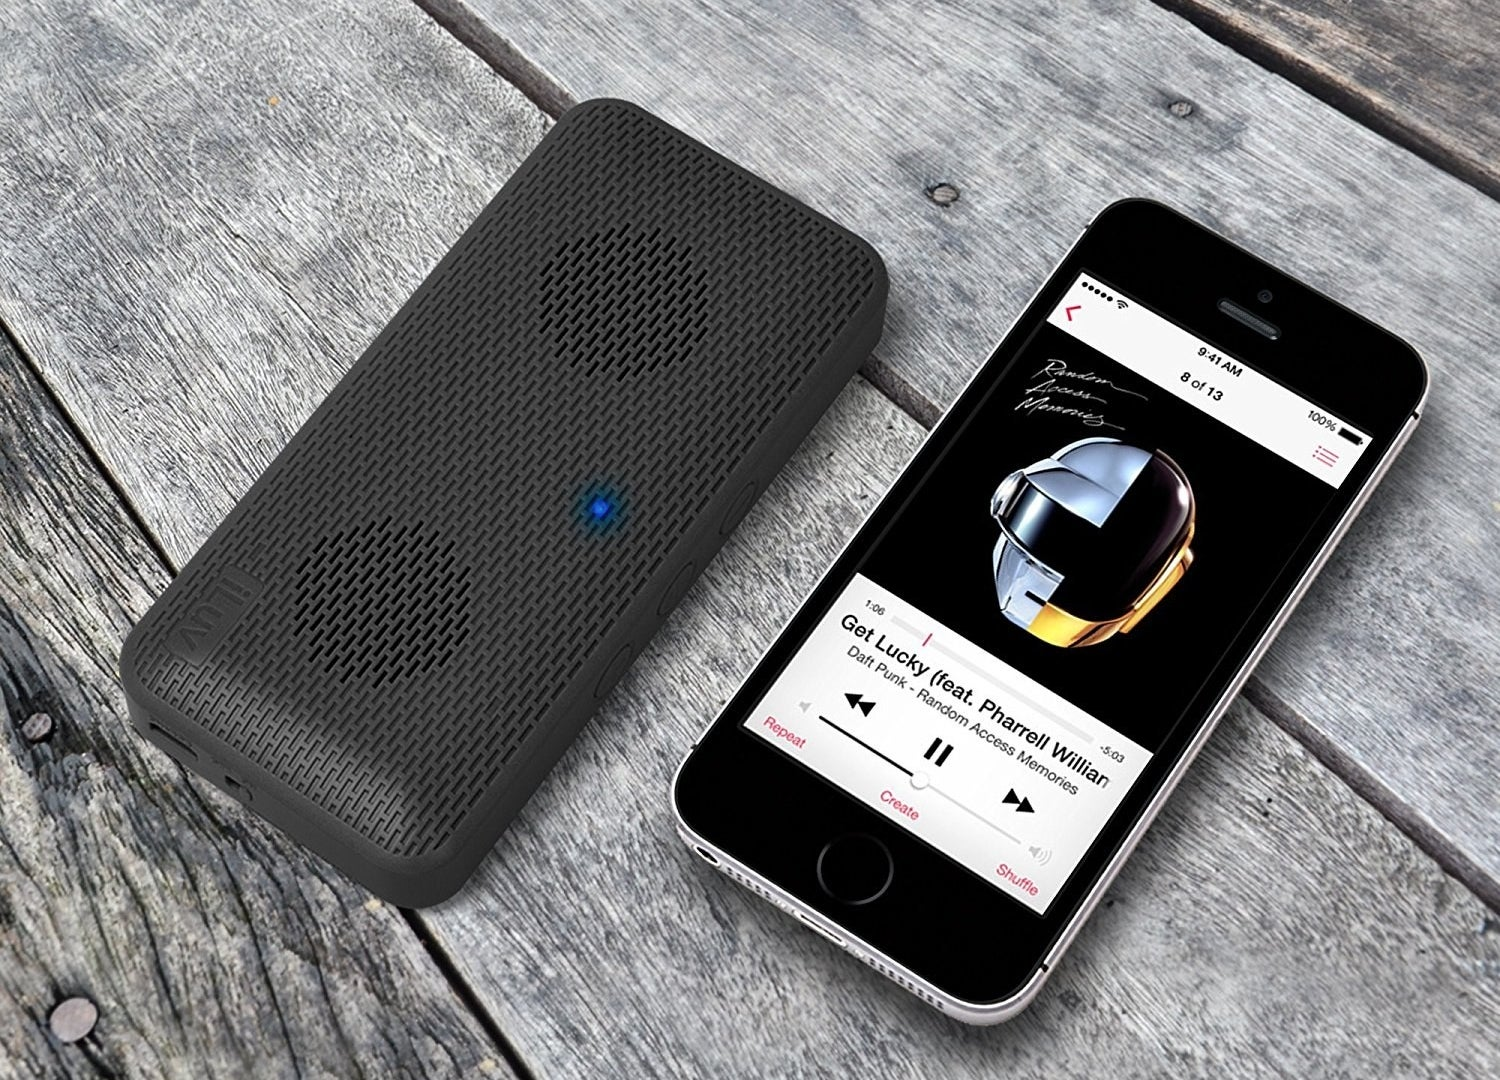 """It's compatible with most Bluetooth devices (including all iOS and Android devices) and can play streamed music from up to 30 feet away from your smartphone wirelessly!Promising review: """"I've had mine for about five months and it works like a charm. In fact, it seems like magic. The case actually feels empty. The sound quality and volume far exceeded expectations. It outperforms some larger and more expensive Bluetooth speakers."""" —Bill ReinehrGet it from Amazon for $9.96."""